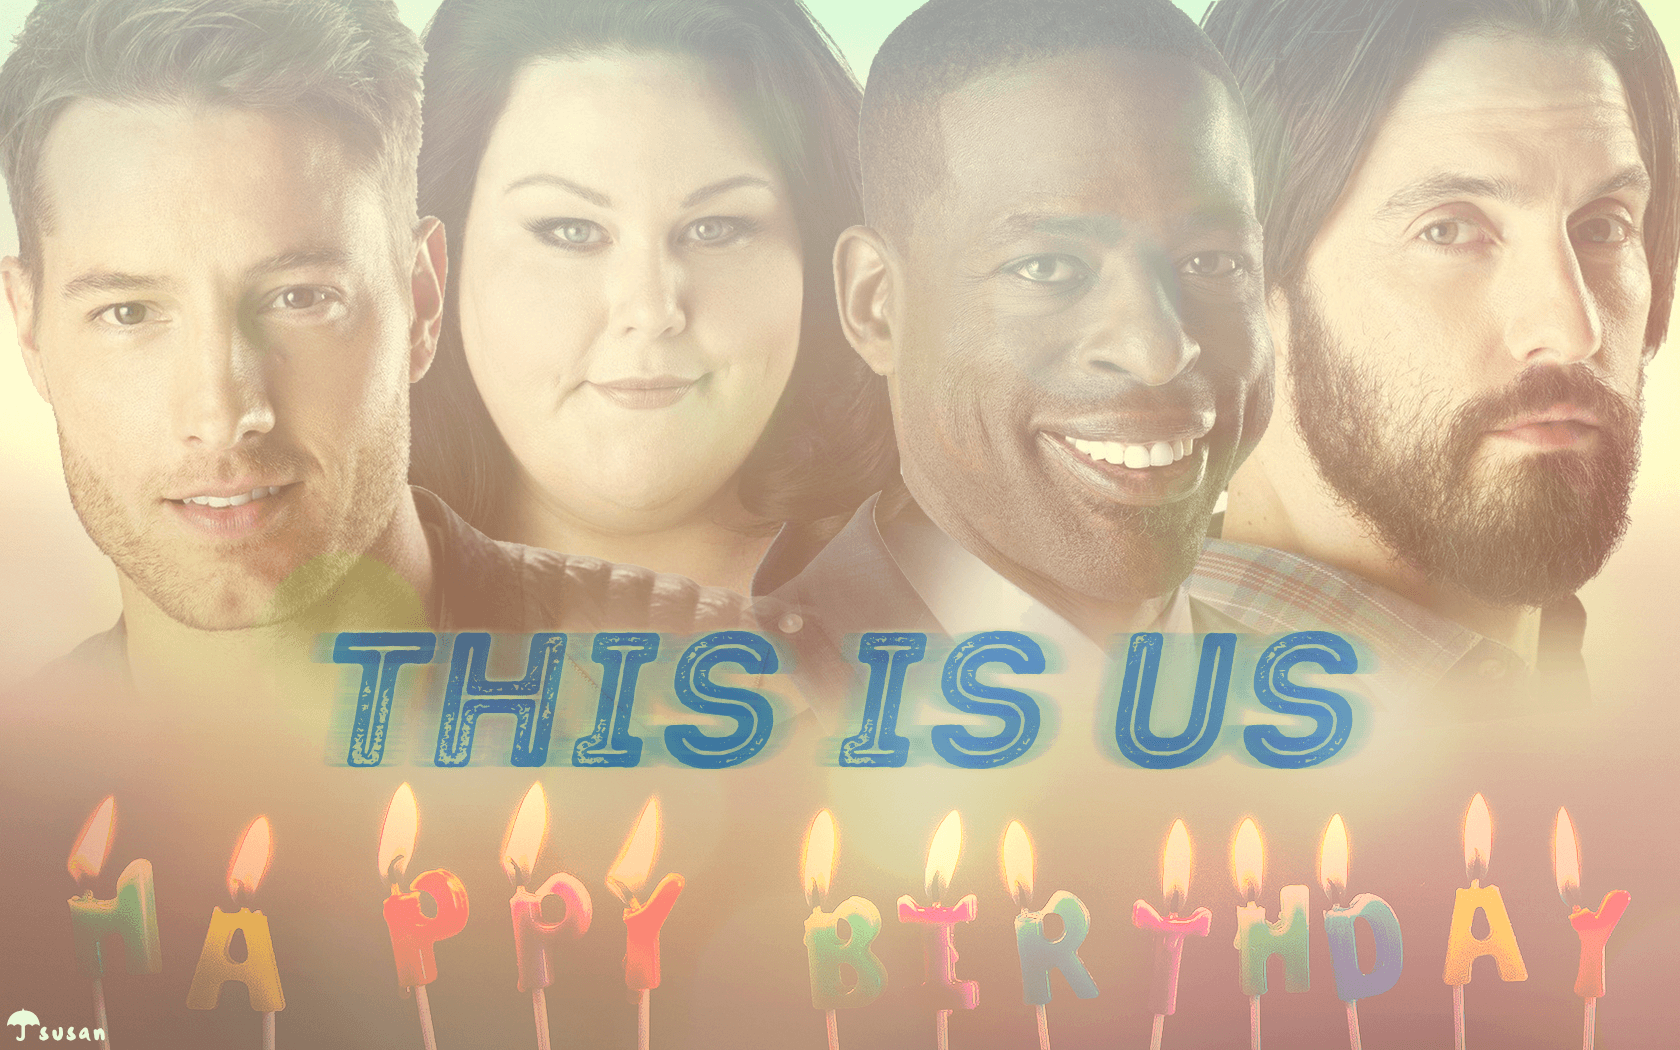 WALLPAPER: Happy Birthday (This Is Us) | GIANT FAN